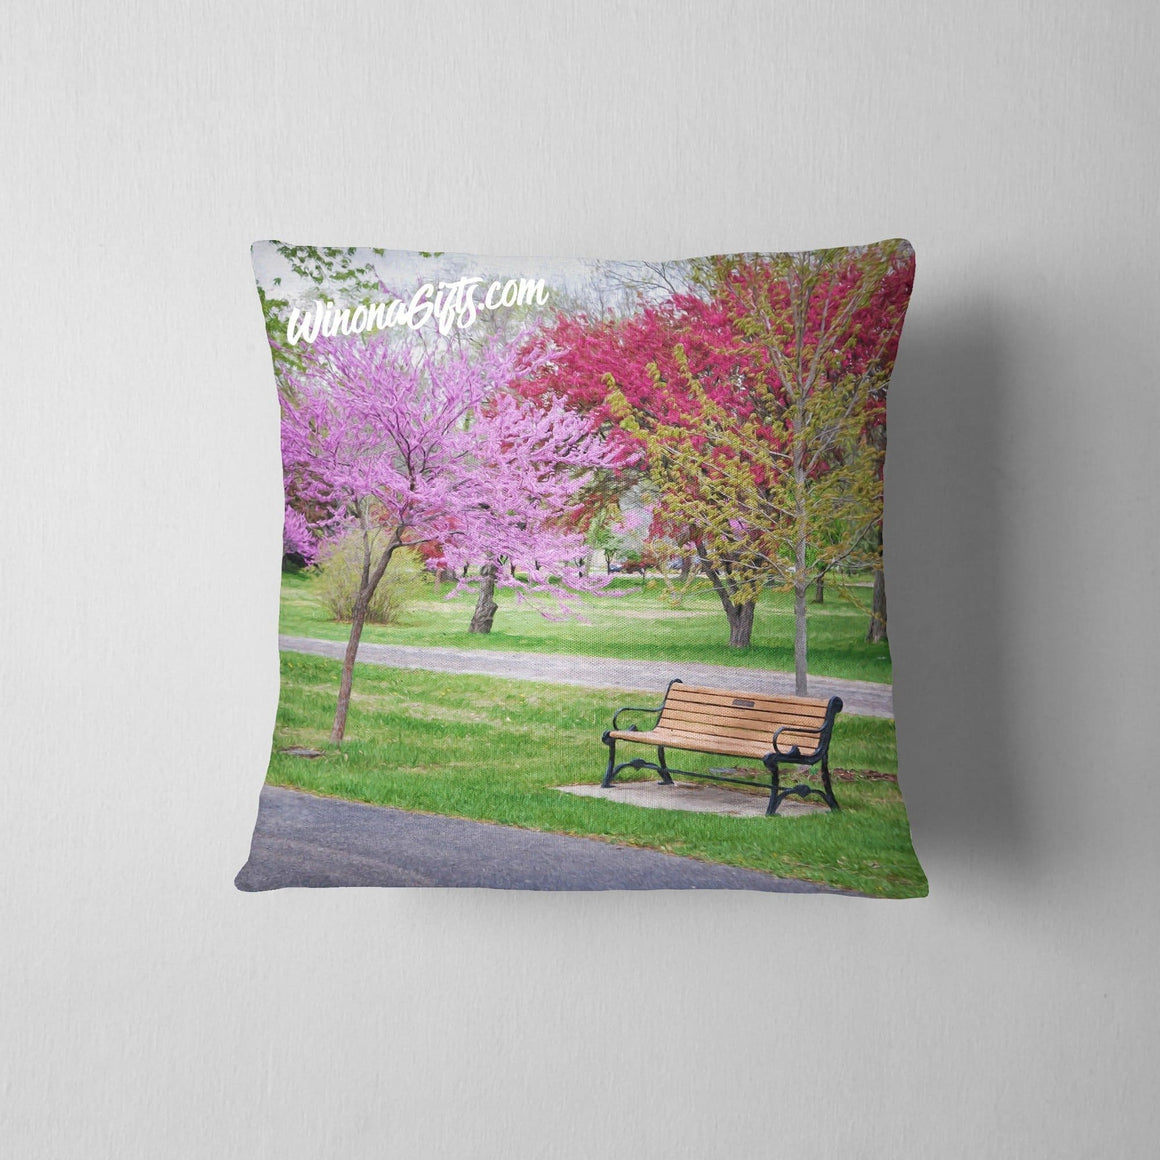 Pillow Redbud Tree With Bench Winona Minnesota - Kari Yearous Photography KetoLaughs